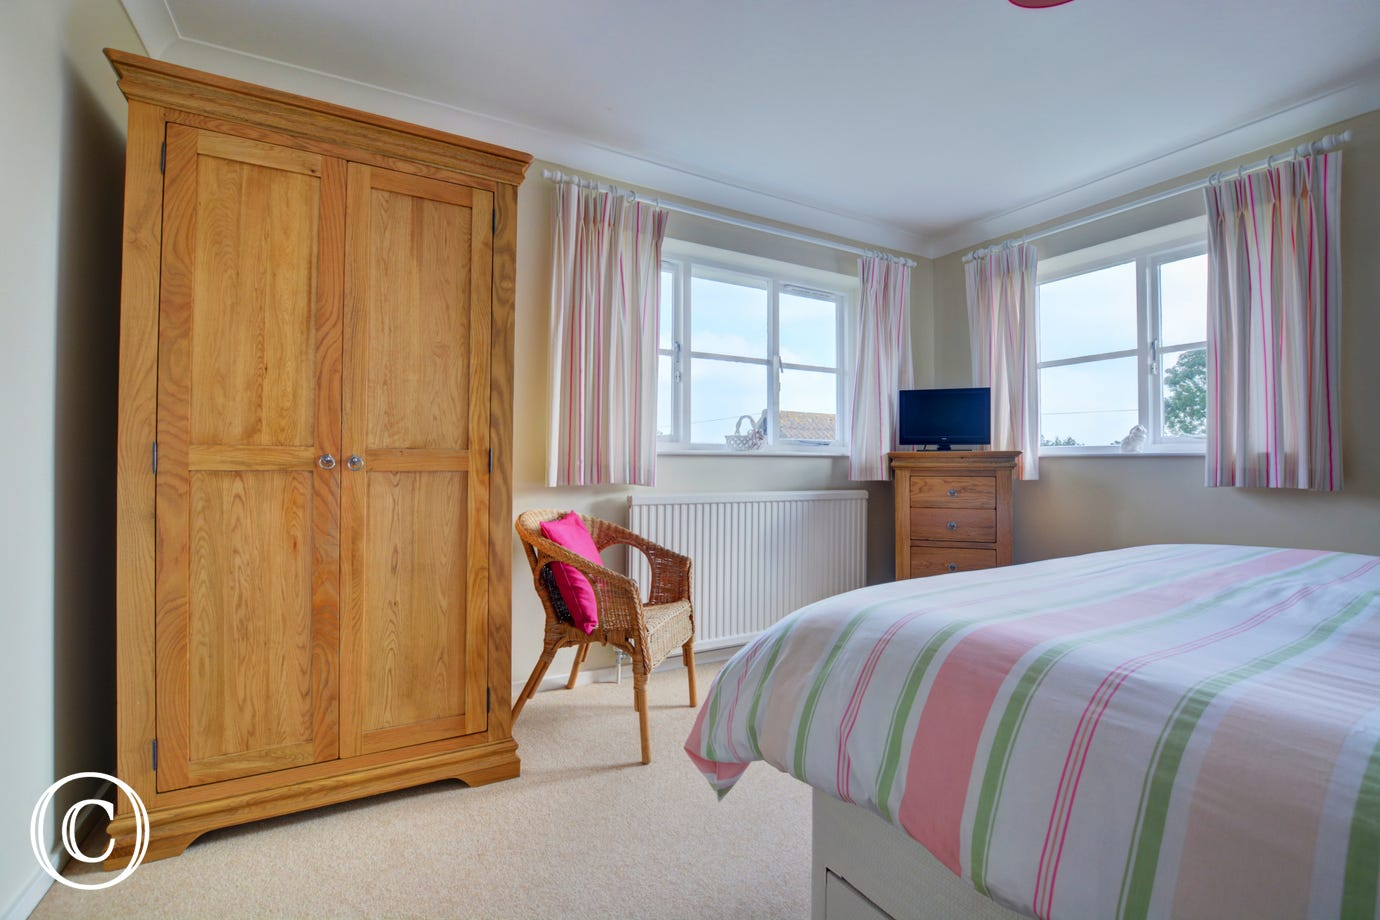 With bedroom furniture providing storage and double aspect windows